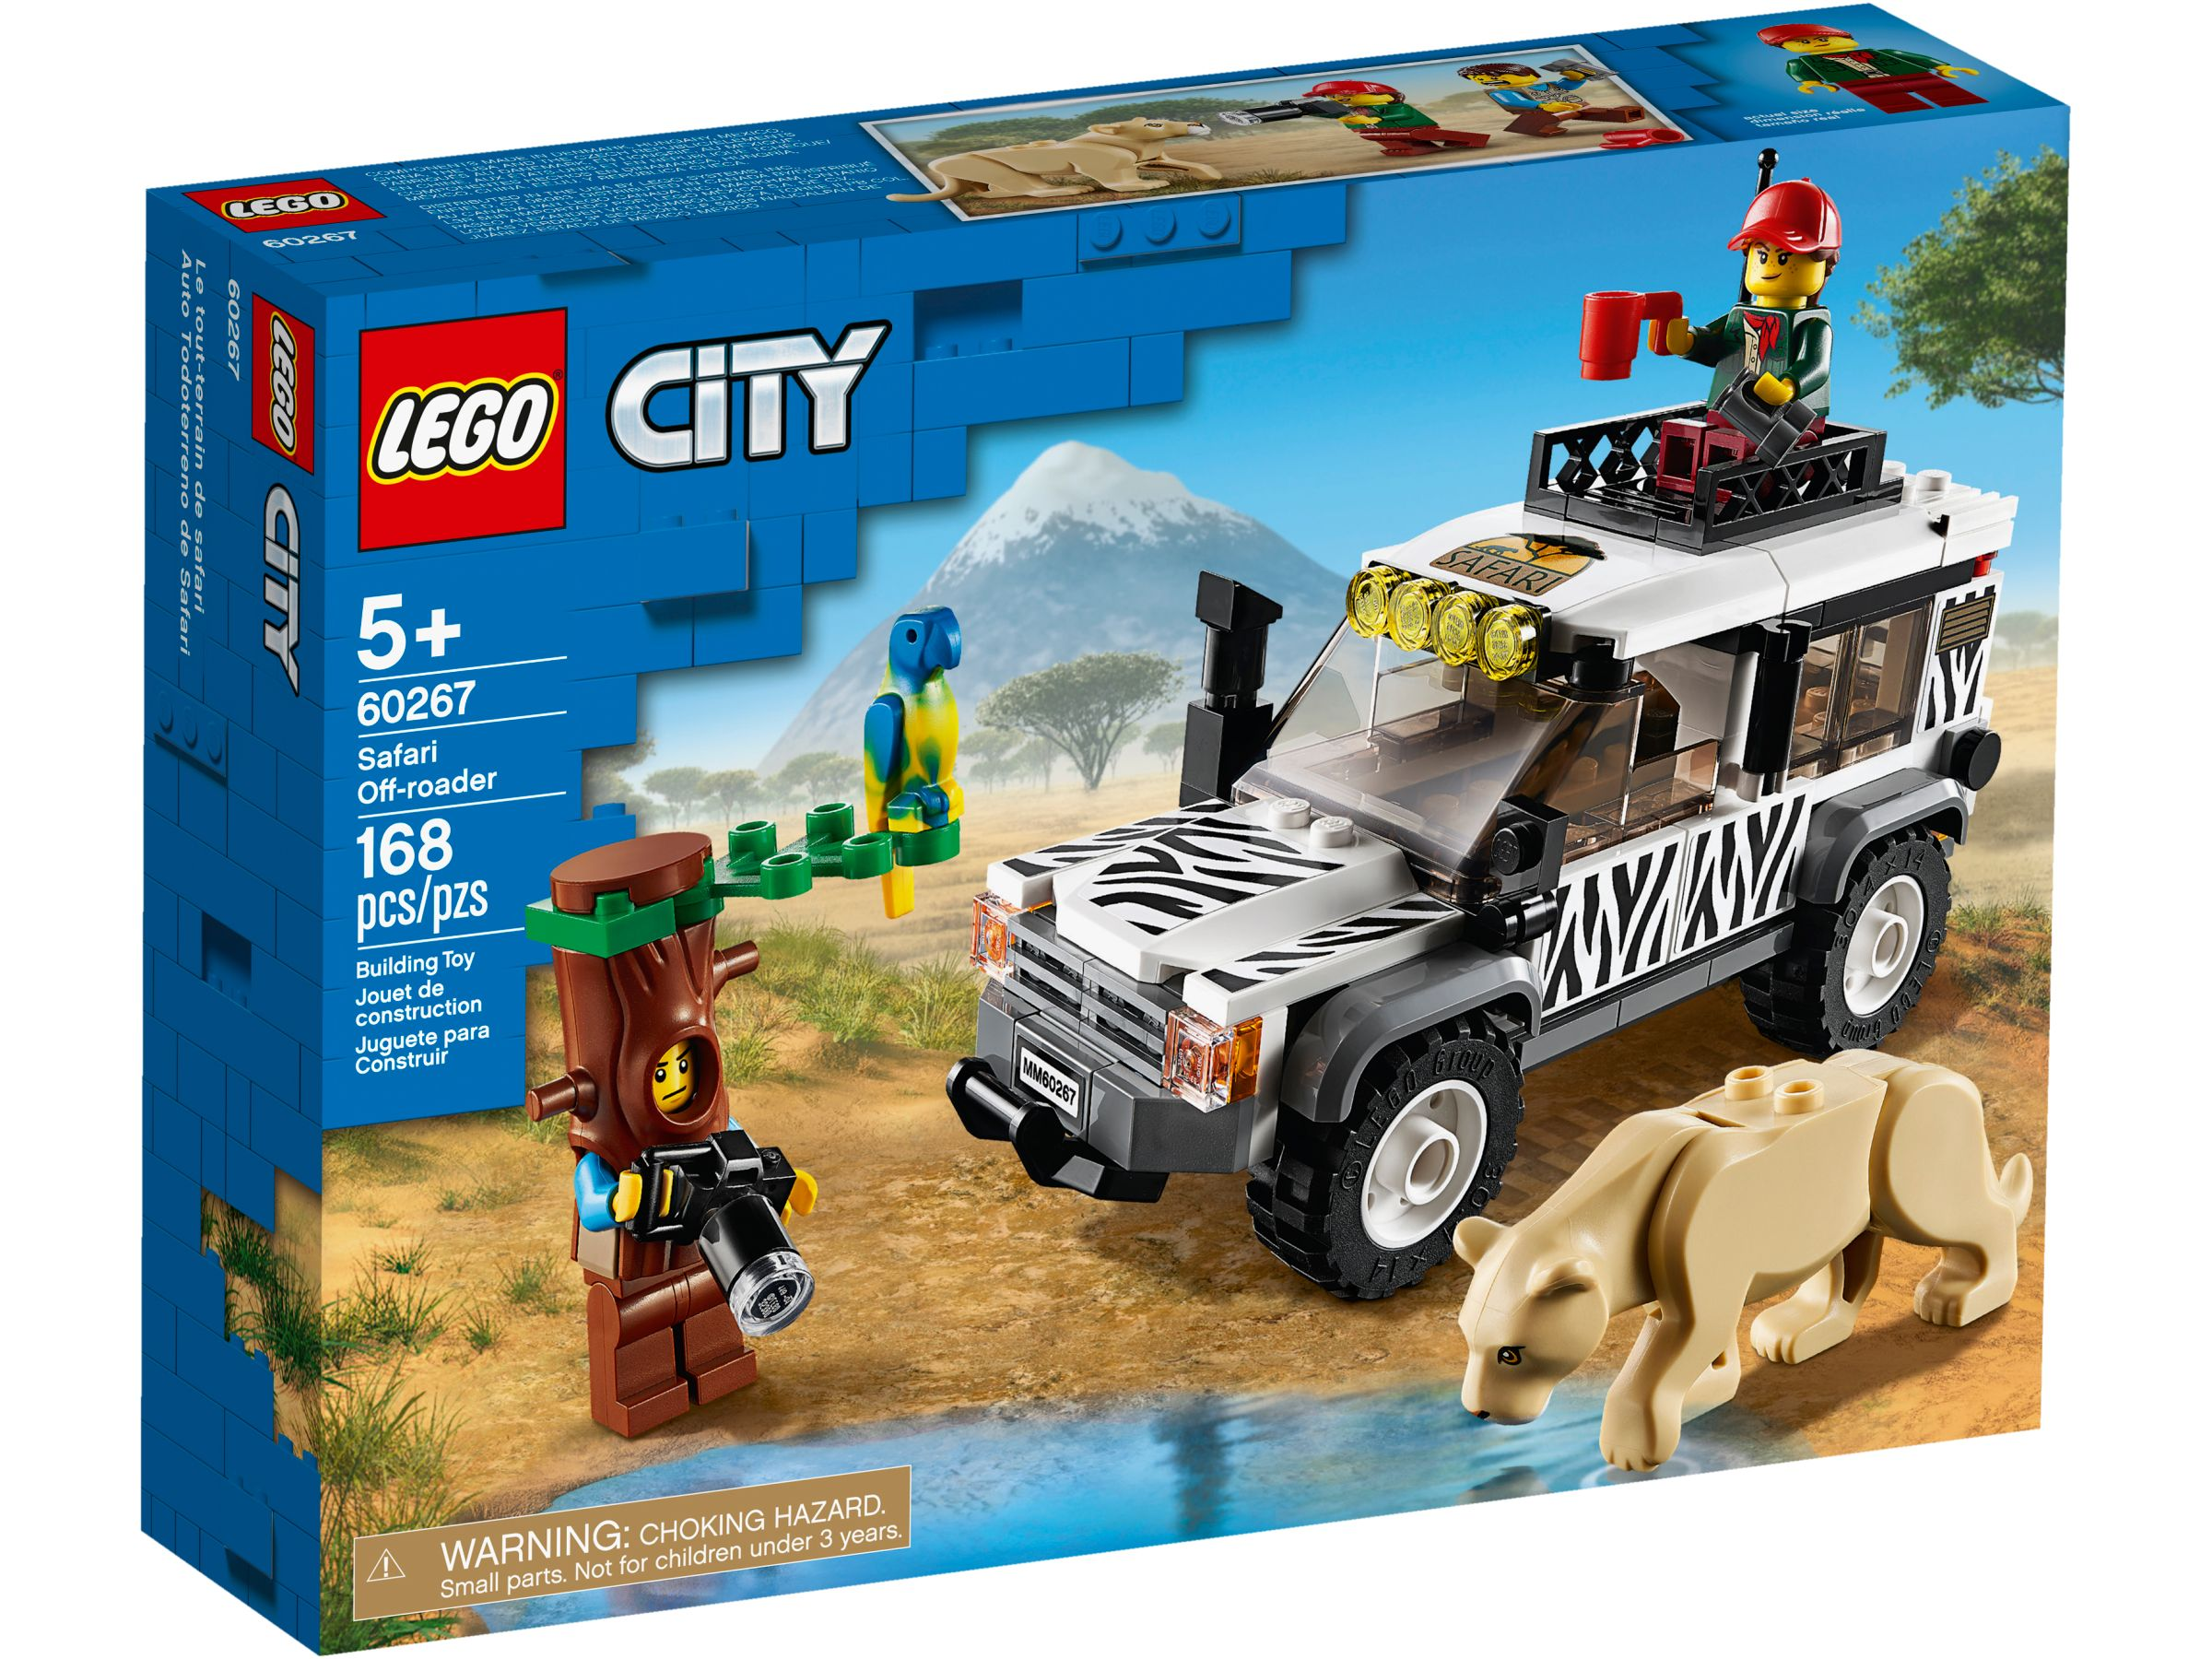 LEGO City 60267 Safari Adventure LEGO_60267_alt1.jpg